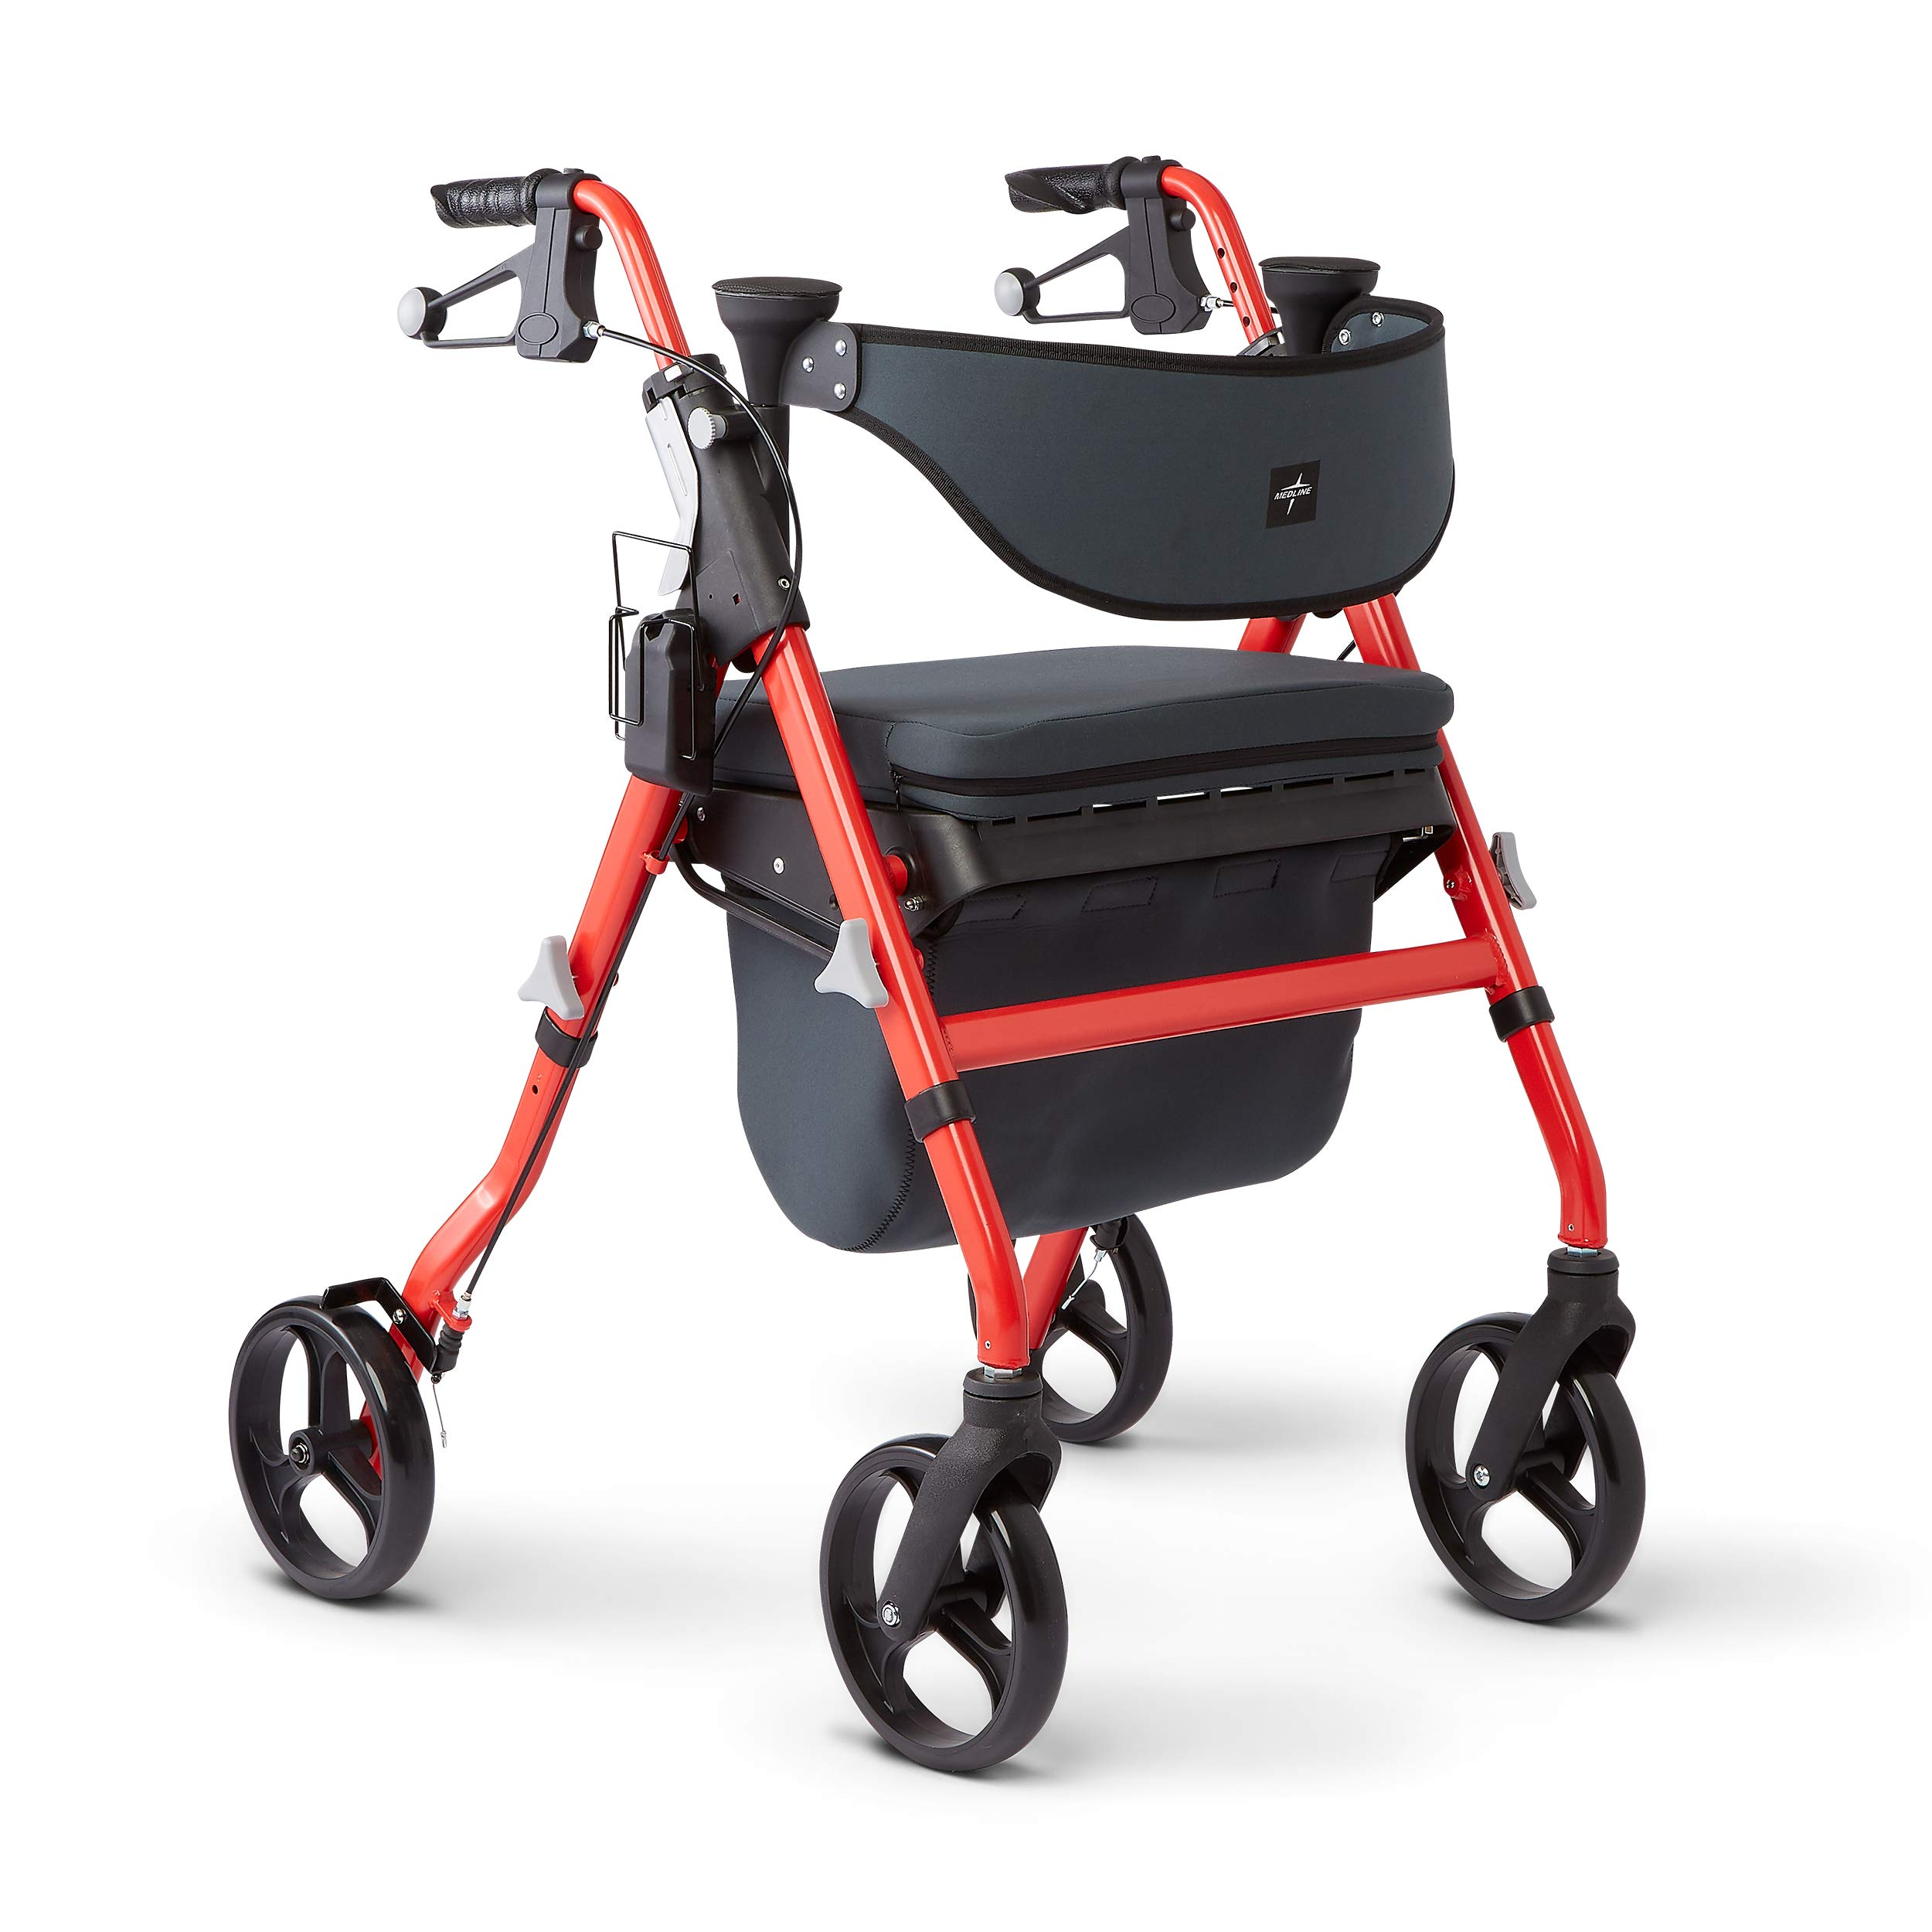 Medline Premium Empower Rollator Walker with Seat, Comfort Handles and Thick Backrest, Folding Walker for Seniors, Microban Antimicrobial Protection, 8'' Wheels, Red Frame